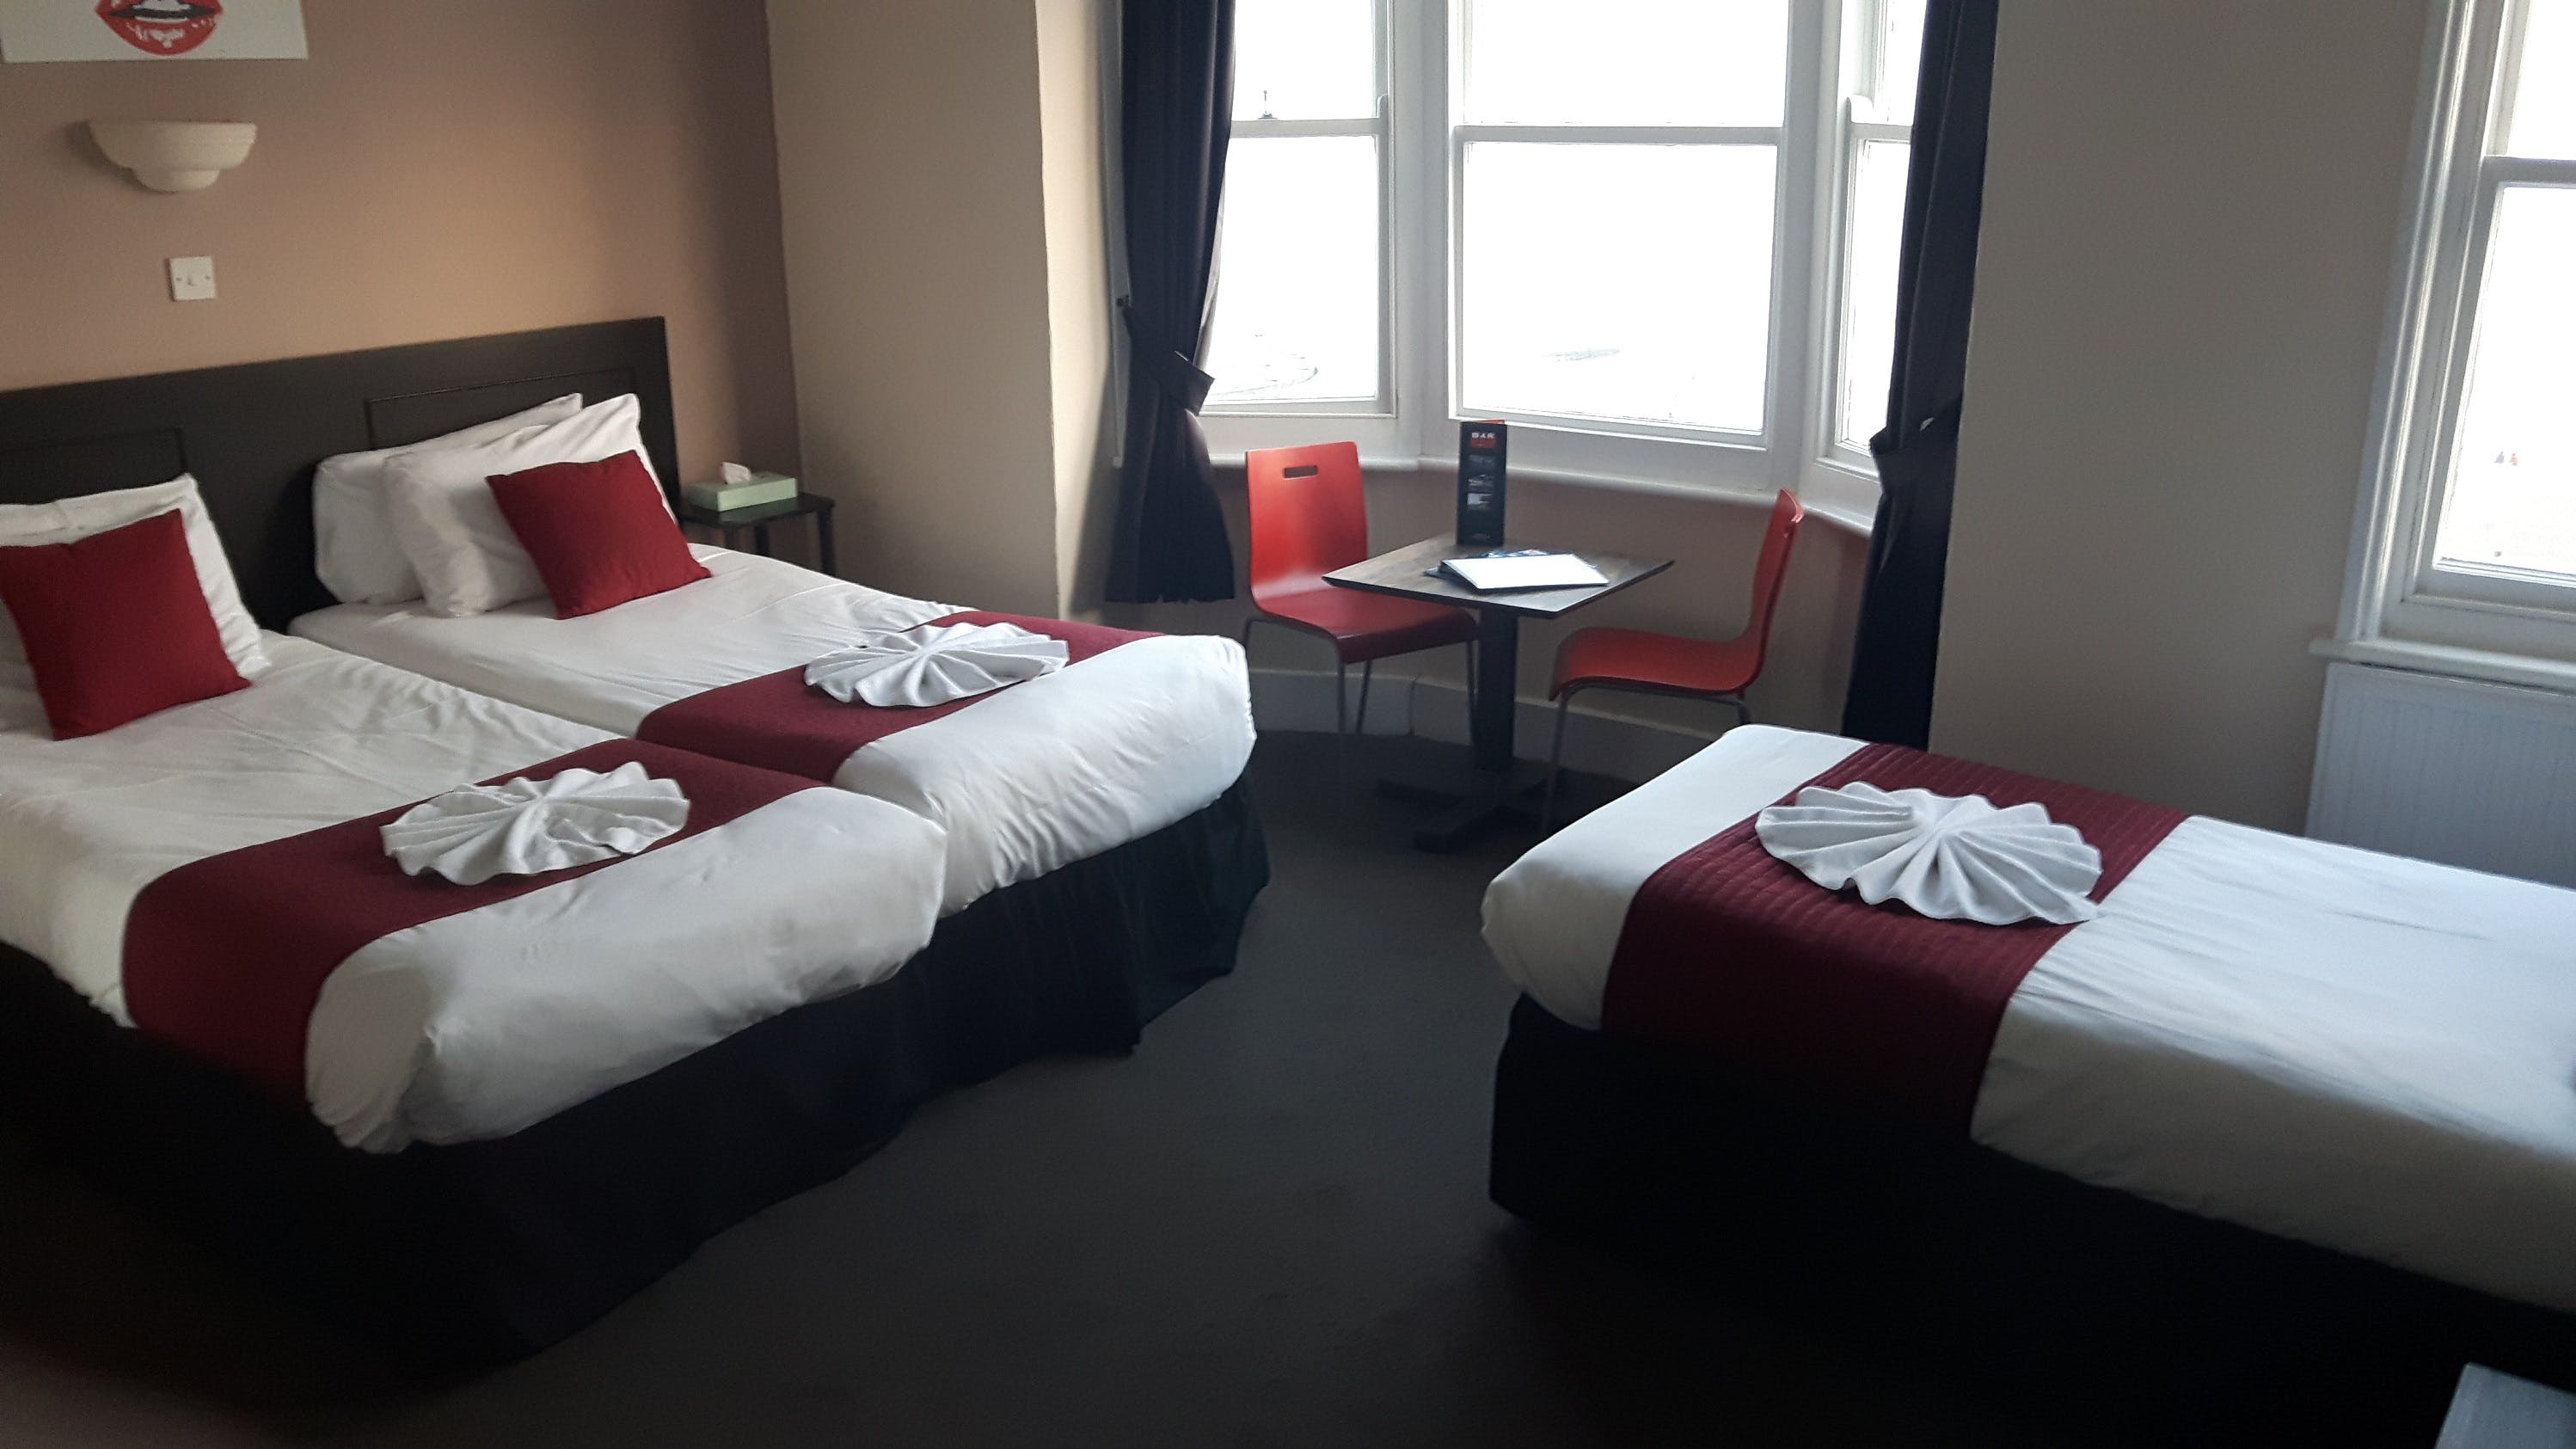 New Madeira Hotel Brighton - Quadruple or Triple Room